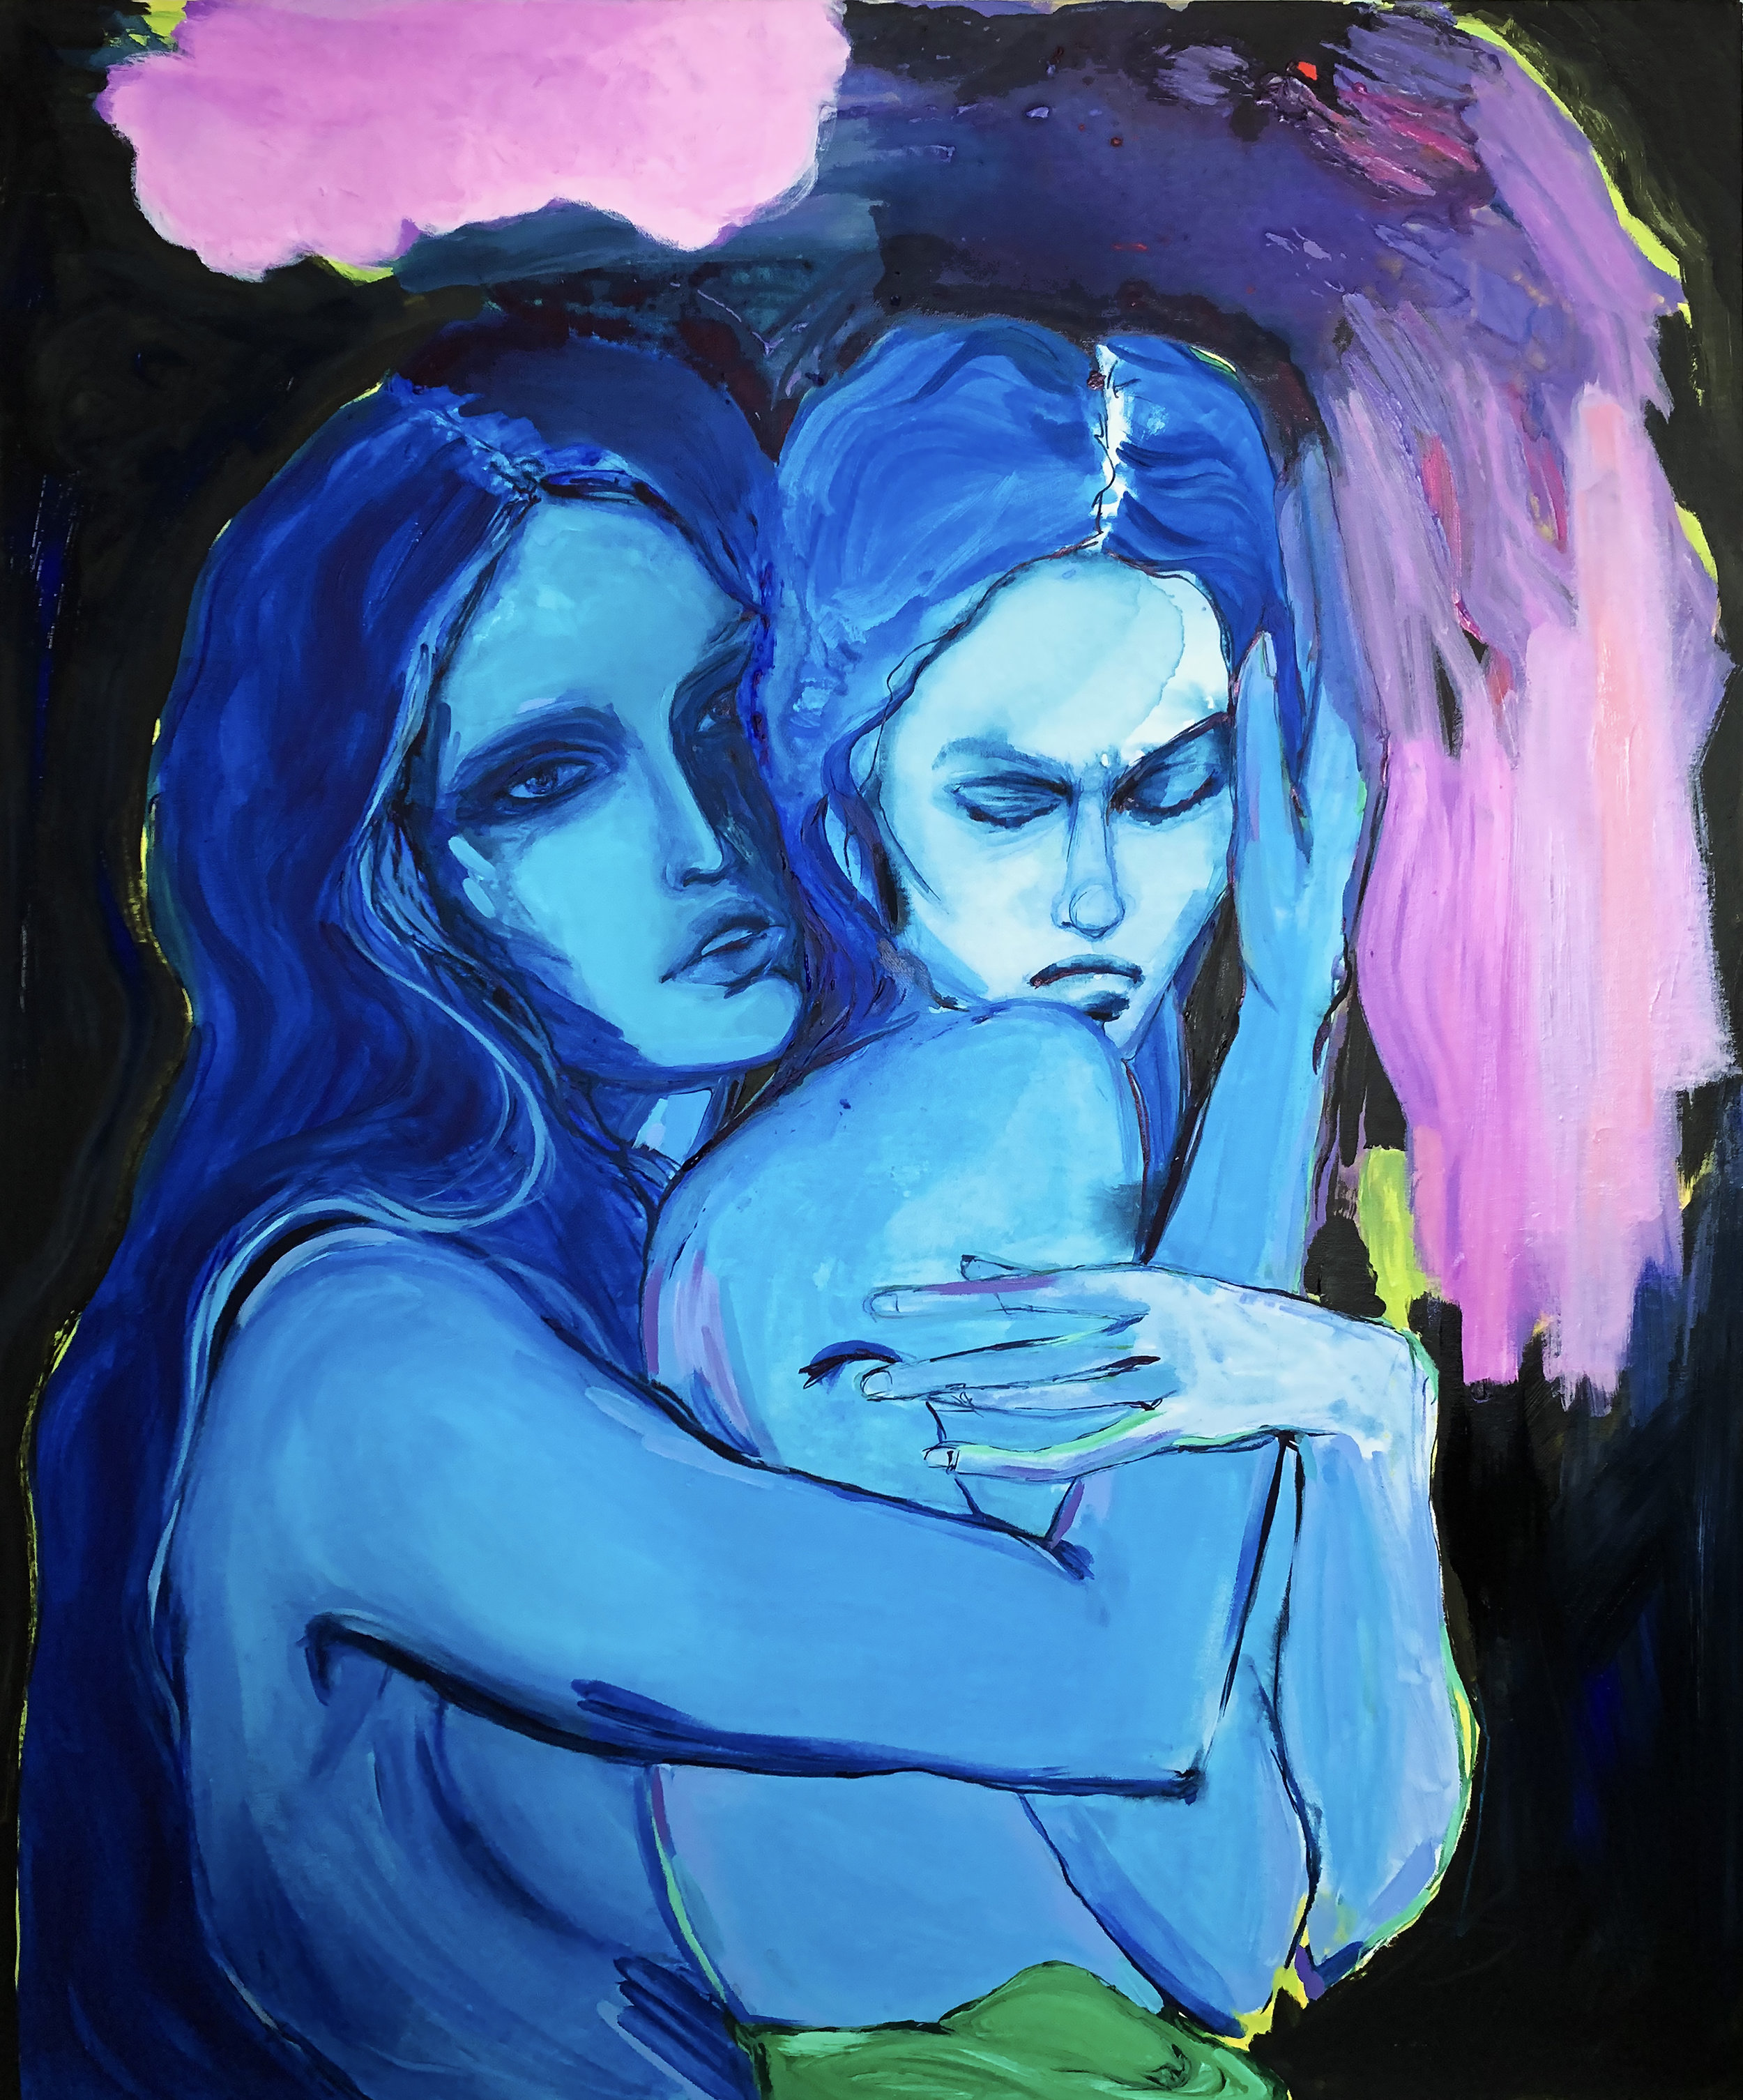 Self love and loathing - Mixed media painting on canvas120x100cm£1800 Unframed£2000 Framed